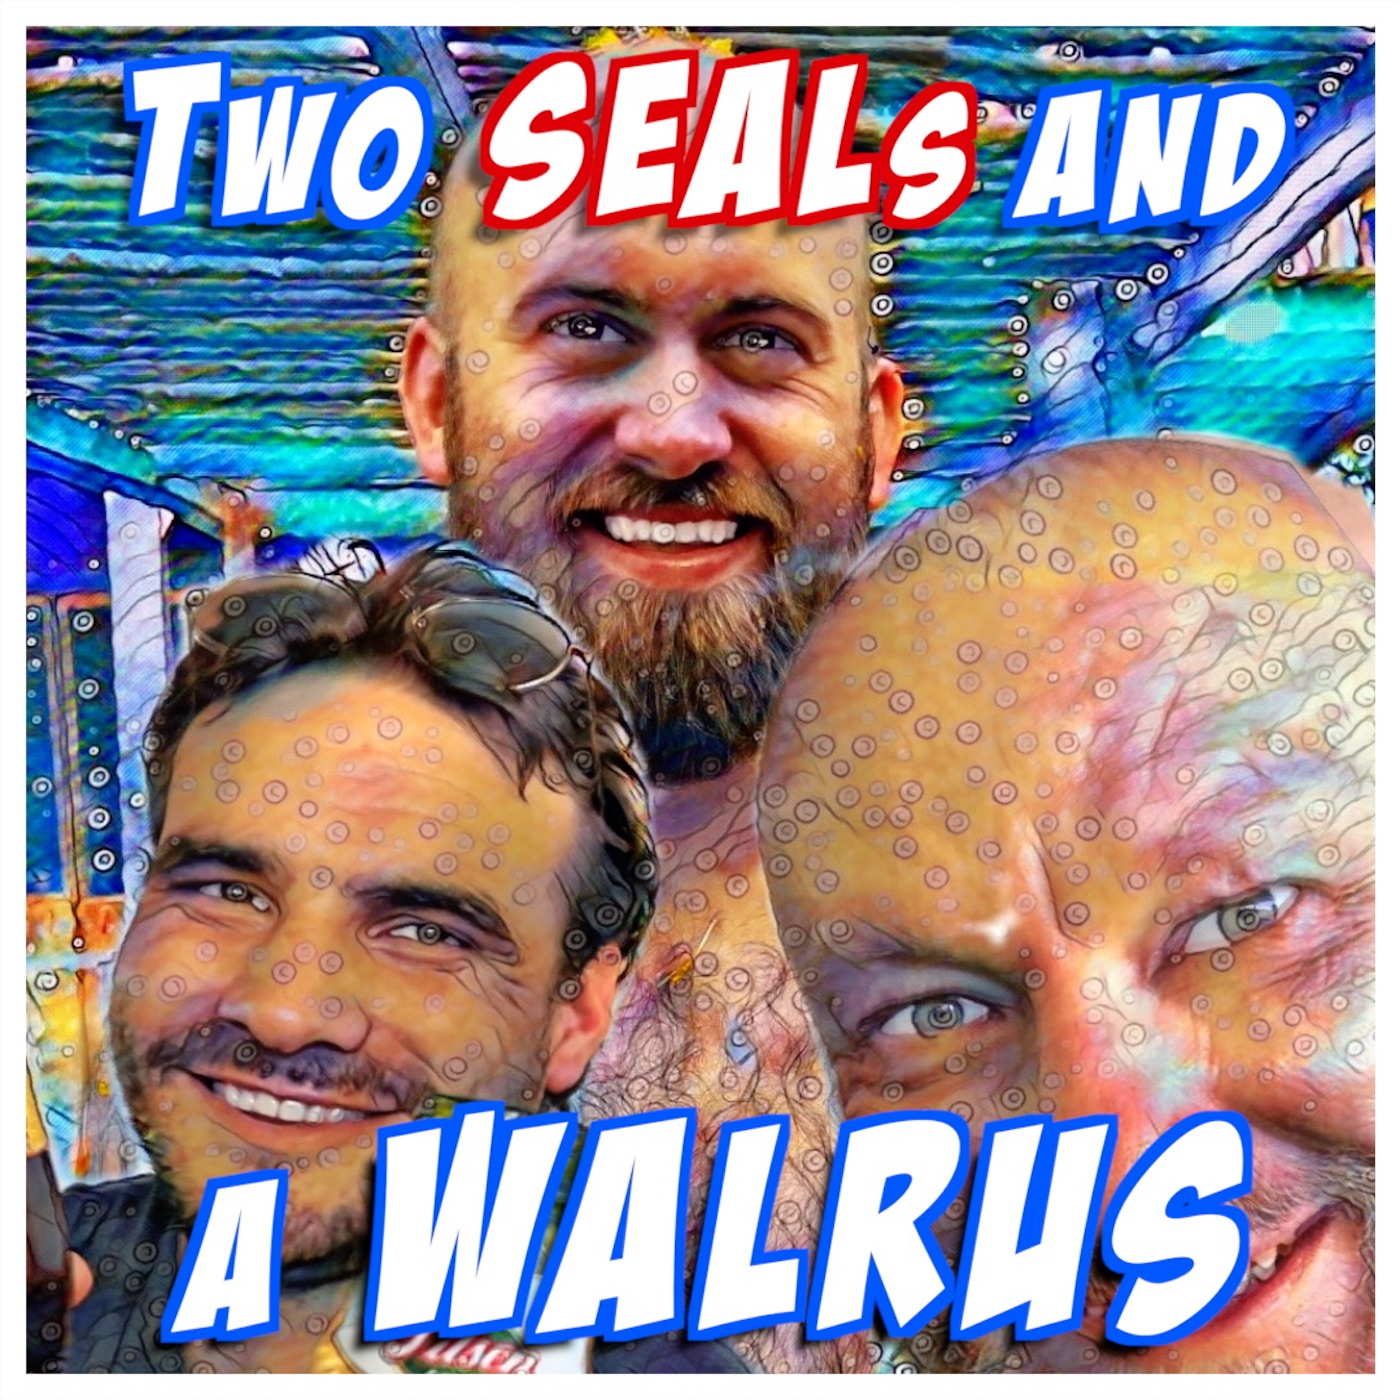 Two SEALs and a Walrus